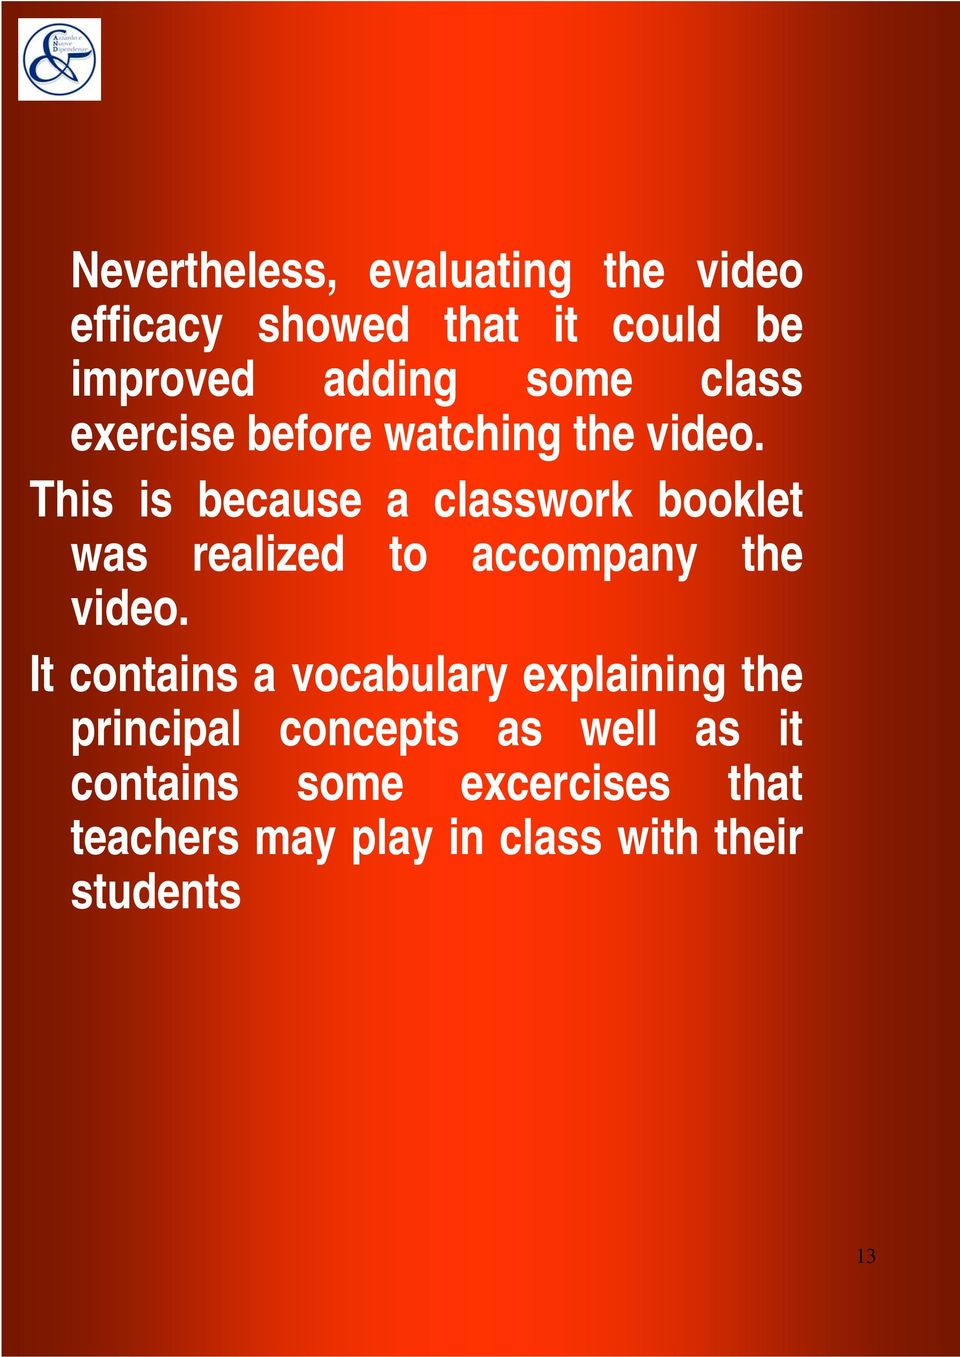 This is because a classwork booklet was realized to accompany the video.